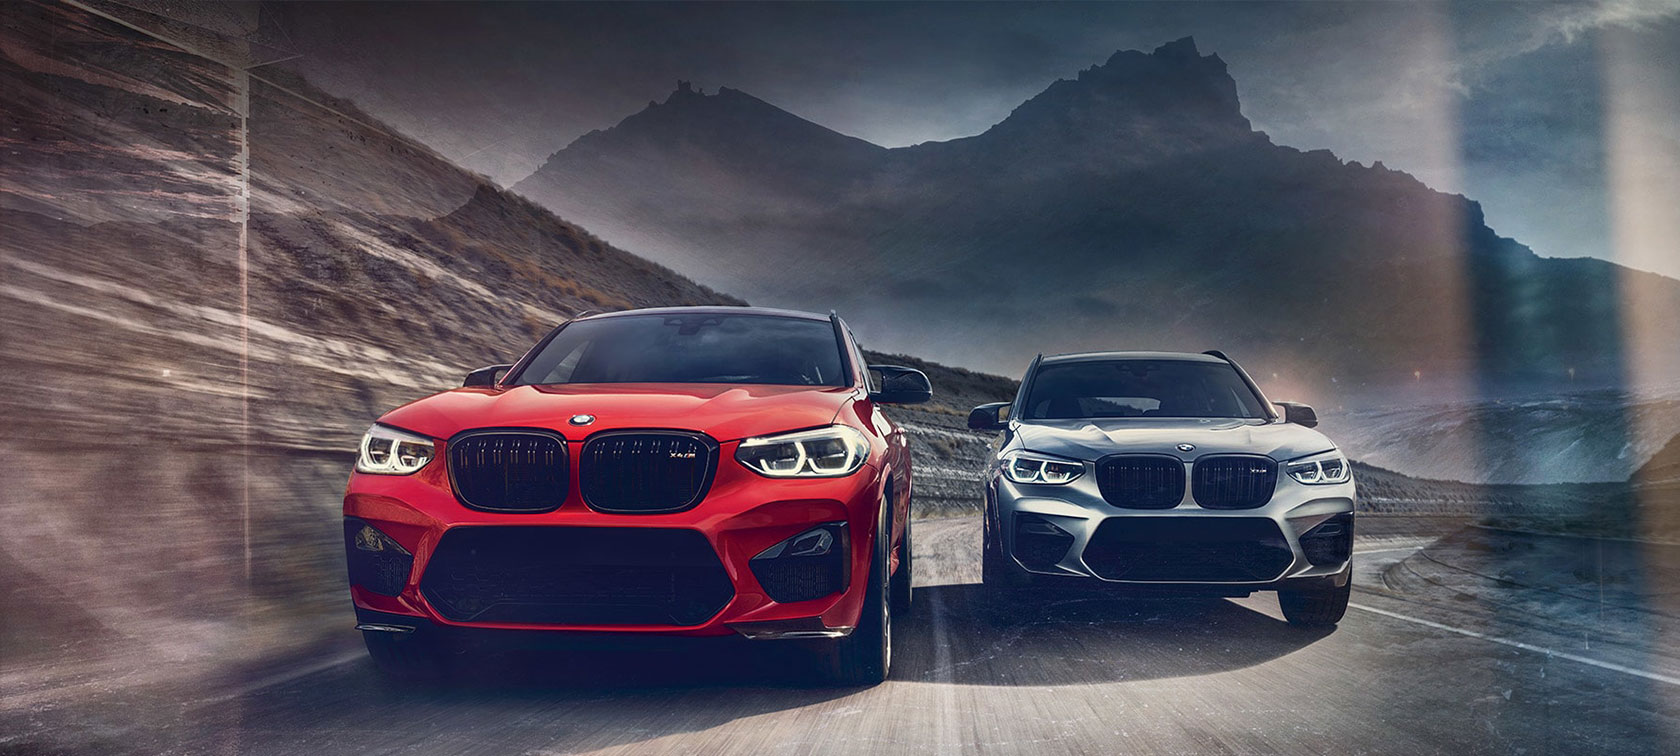 The Most Expensive SUV By Bavarian Carmaker – 2020 BMW X8 >> Bmw Official Website Luxury And Sports Cars Bmw South Africa